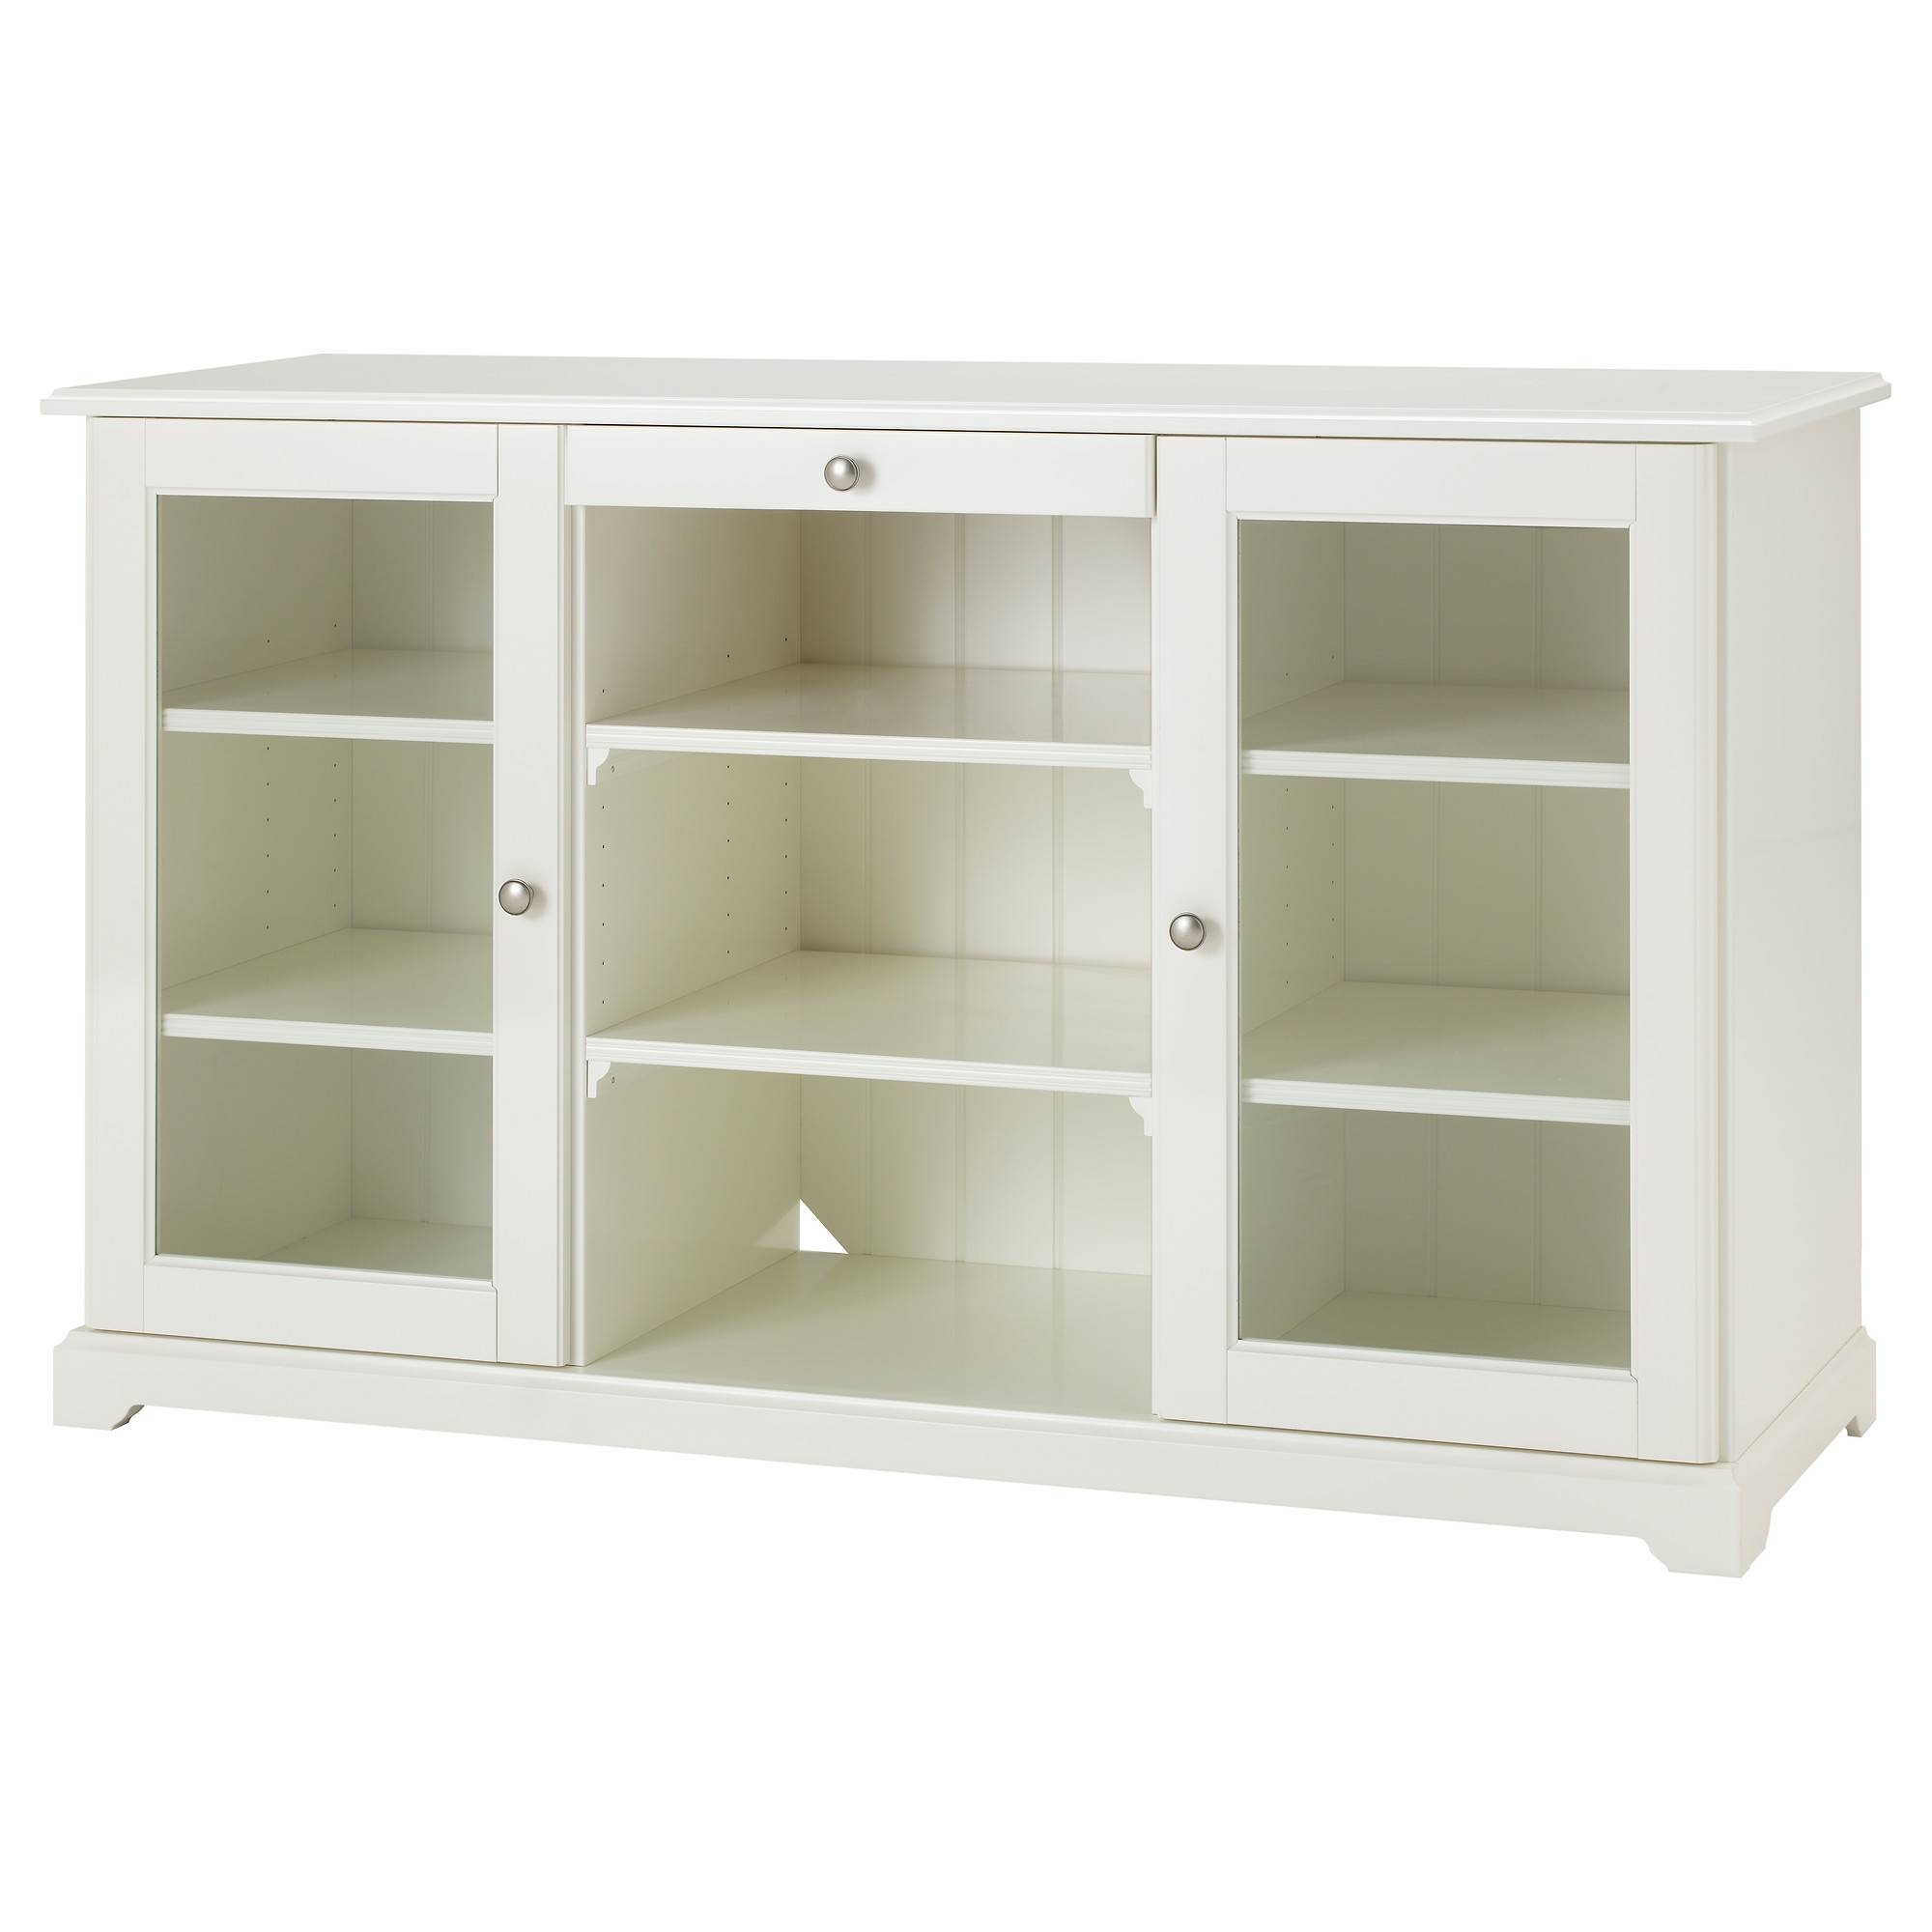 Buffet Tables & Sideboards - Ikea within Contemporary White Sideboards (Image 5 of 30)